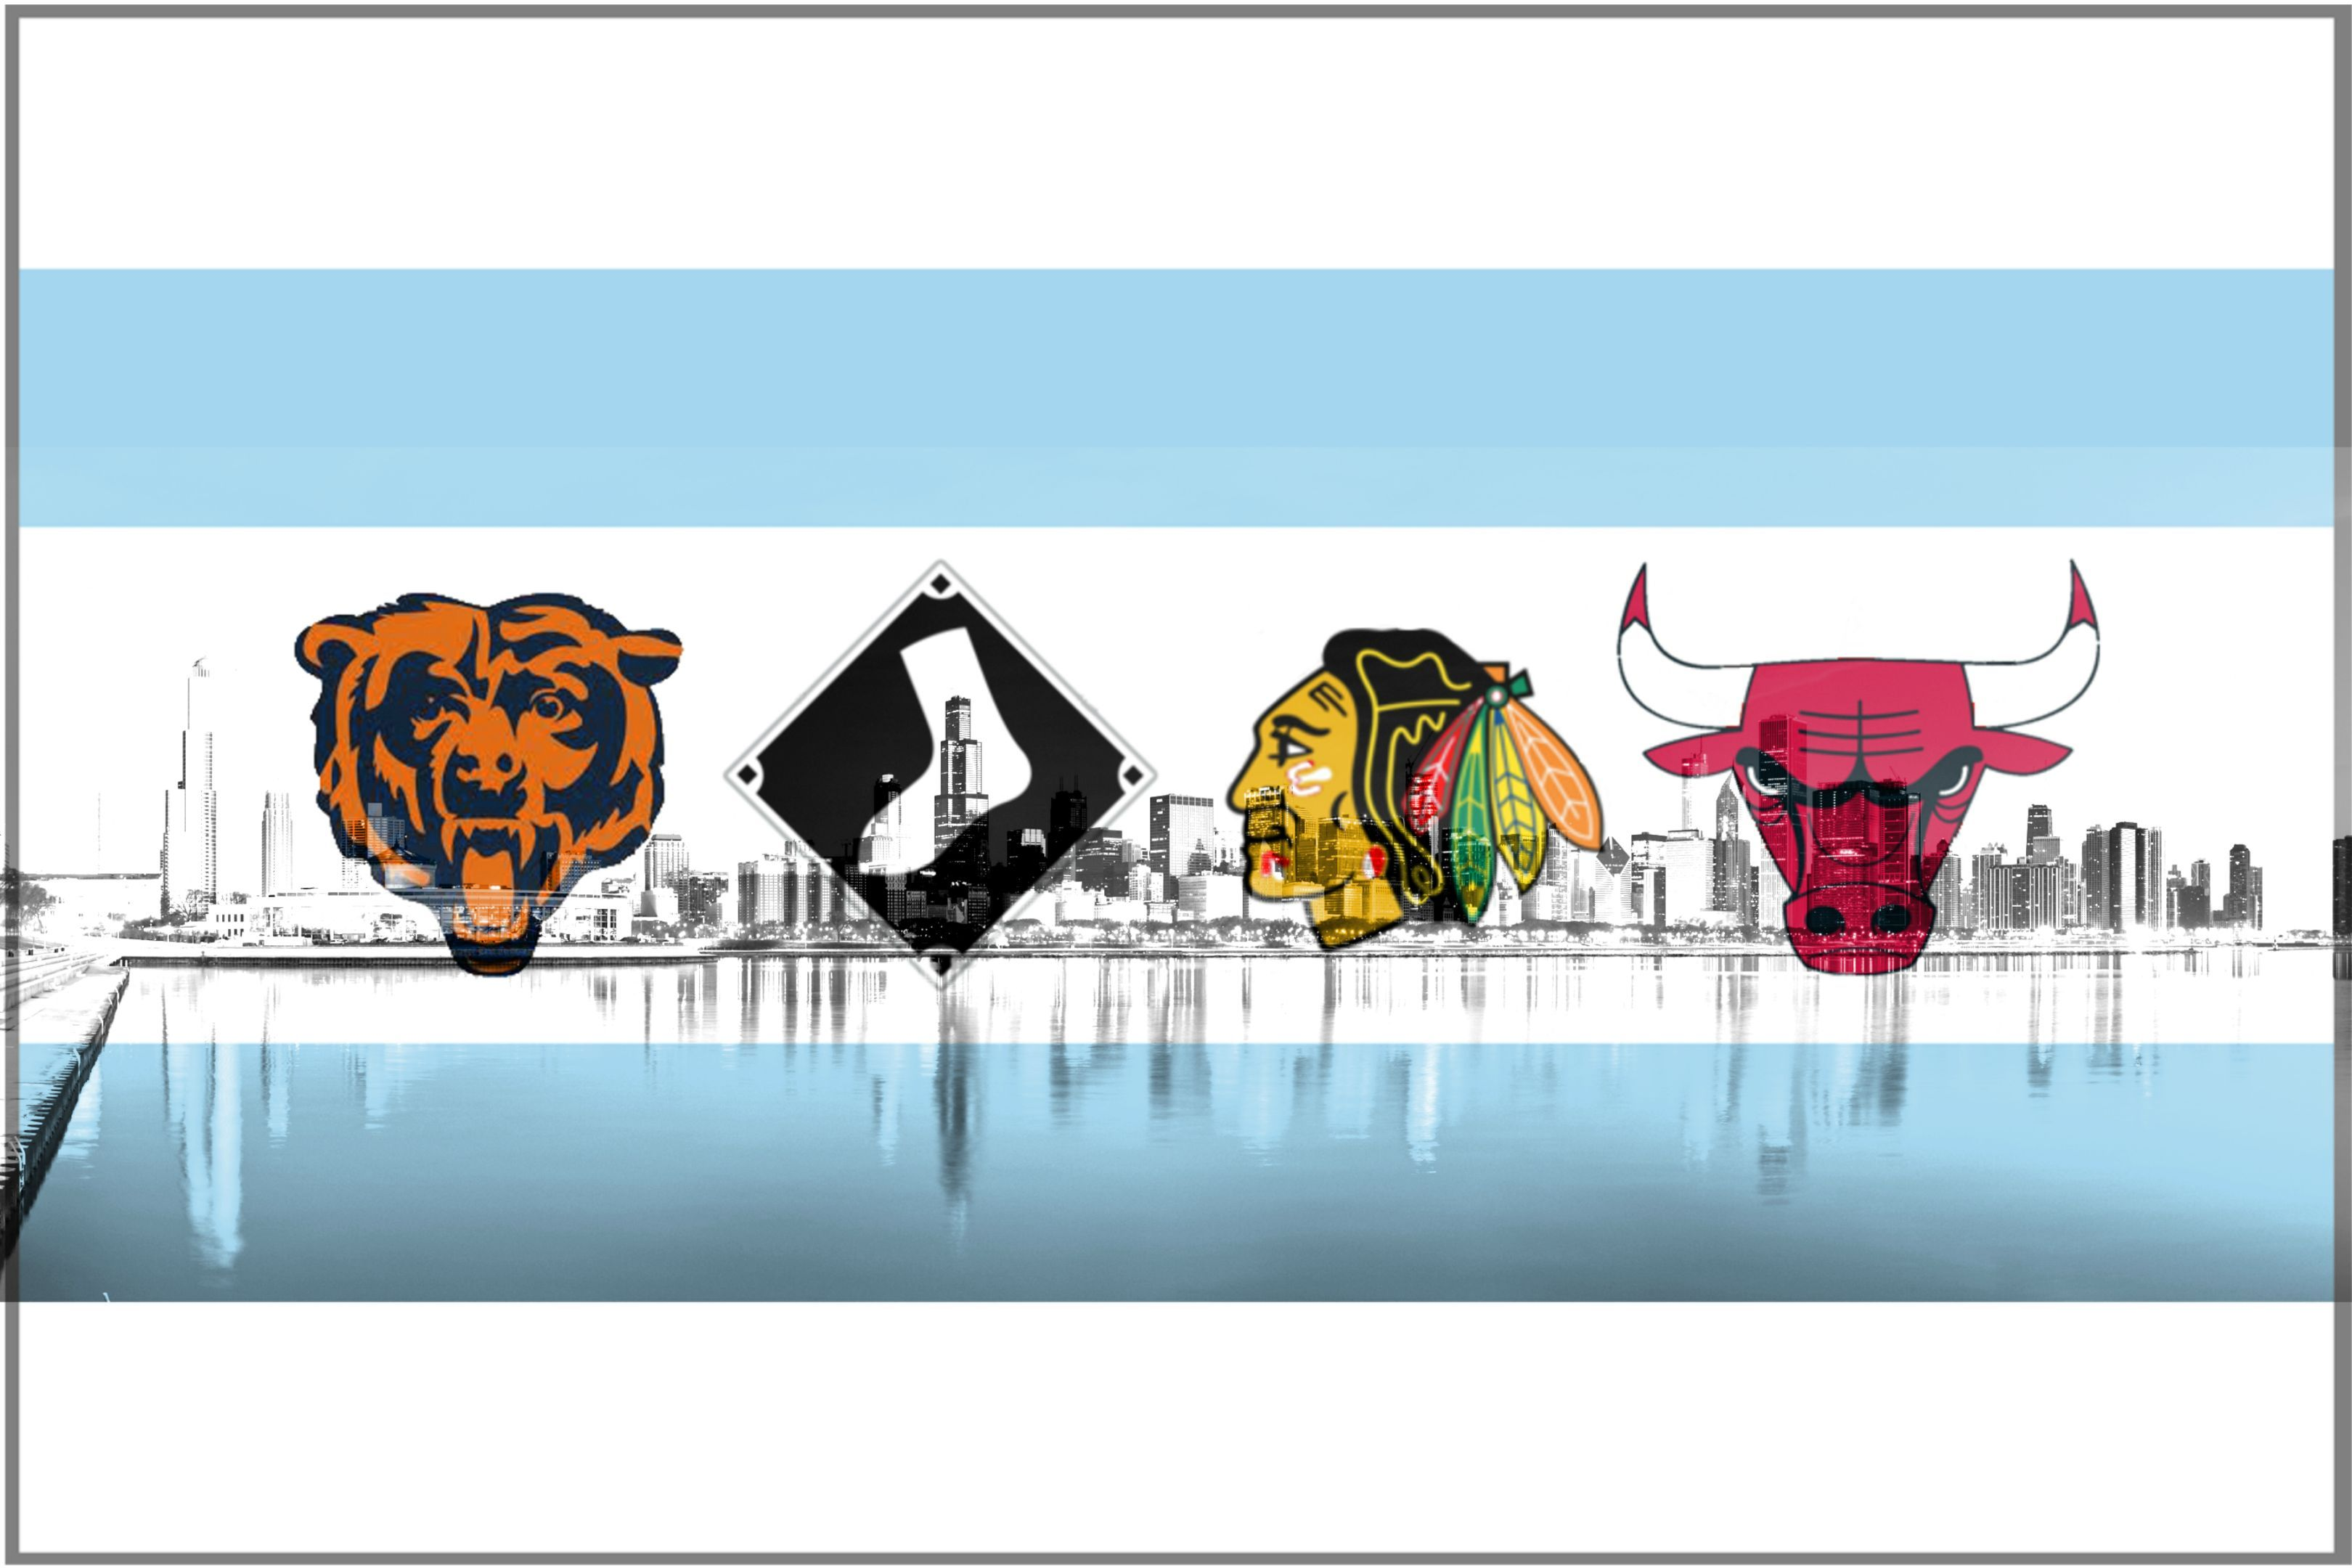 I Ve Seen A Lot Of The Chicago Flag W Sports Logos Replacing The Stars But Most Have The Cubs In There Chicago Sports Sports Wallpapers Chicago Sports Teams